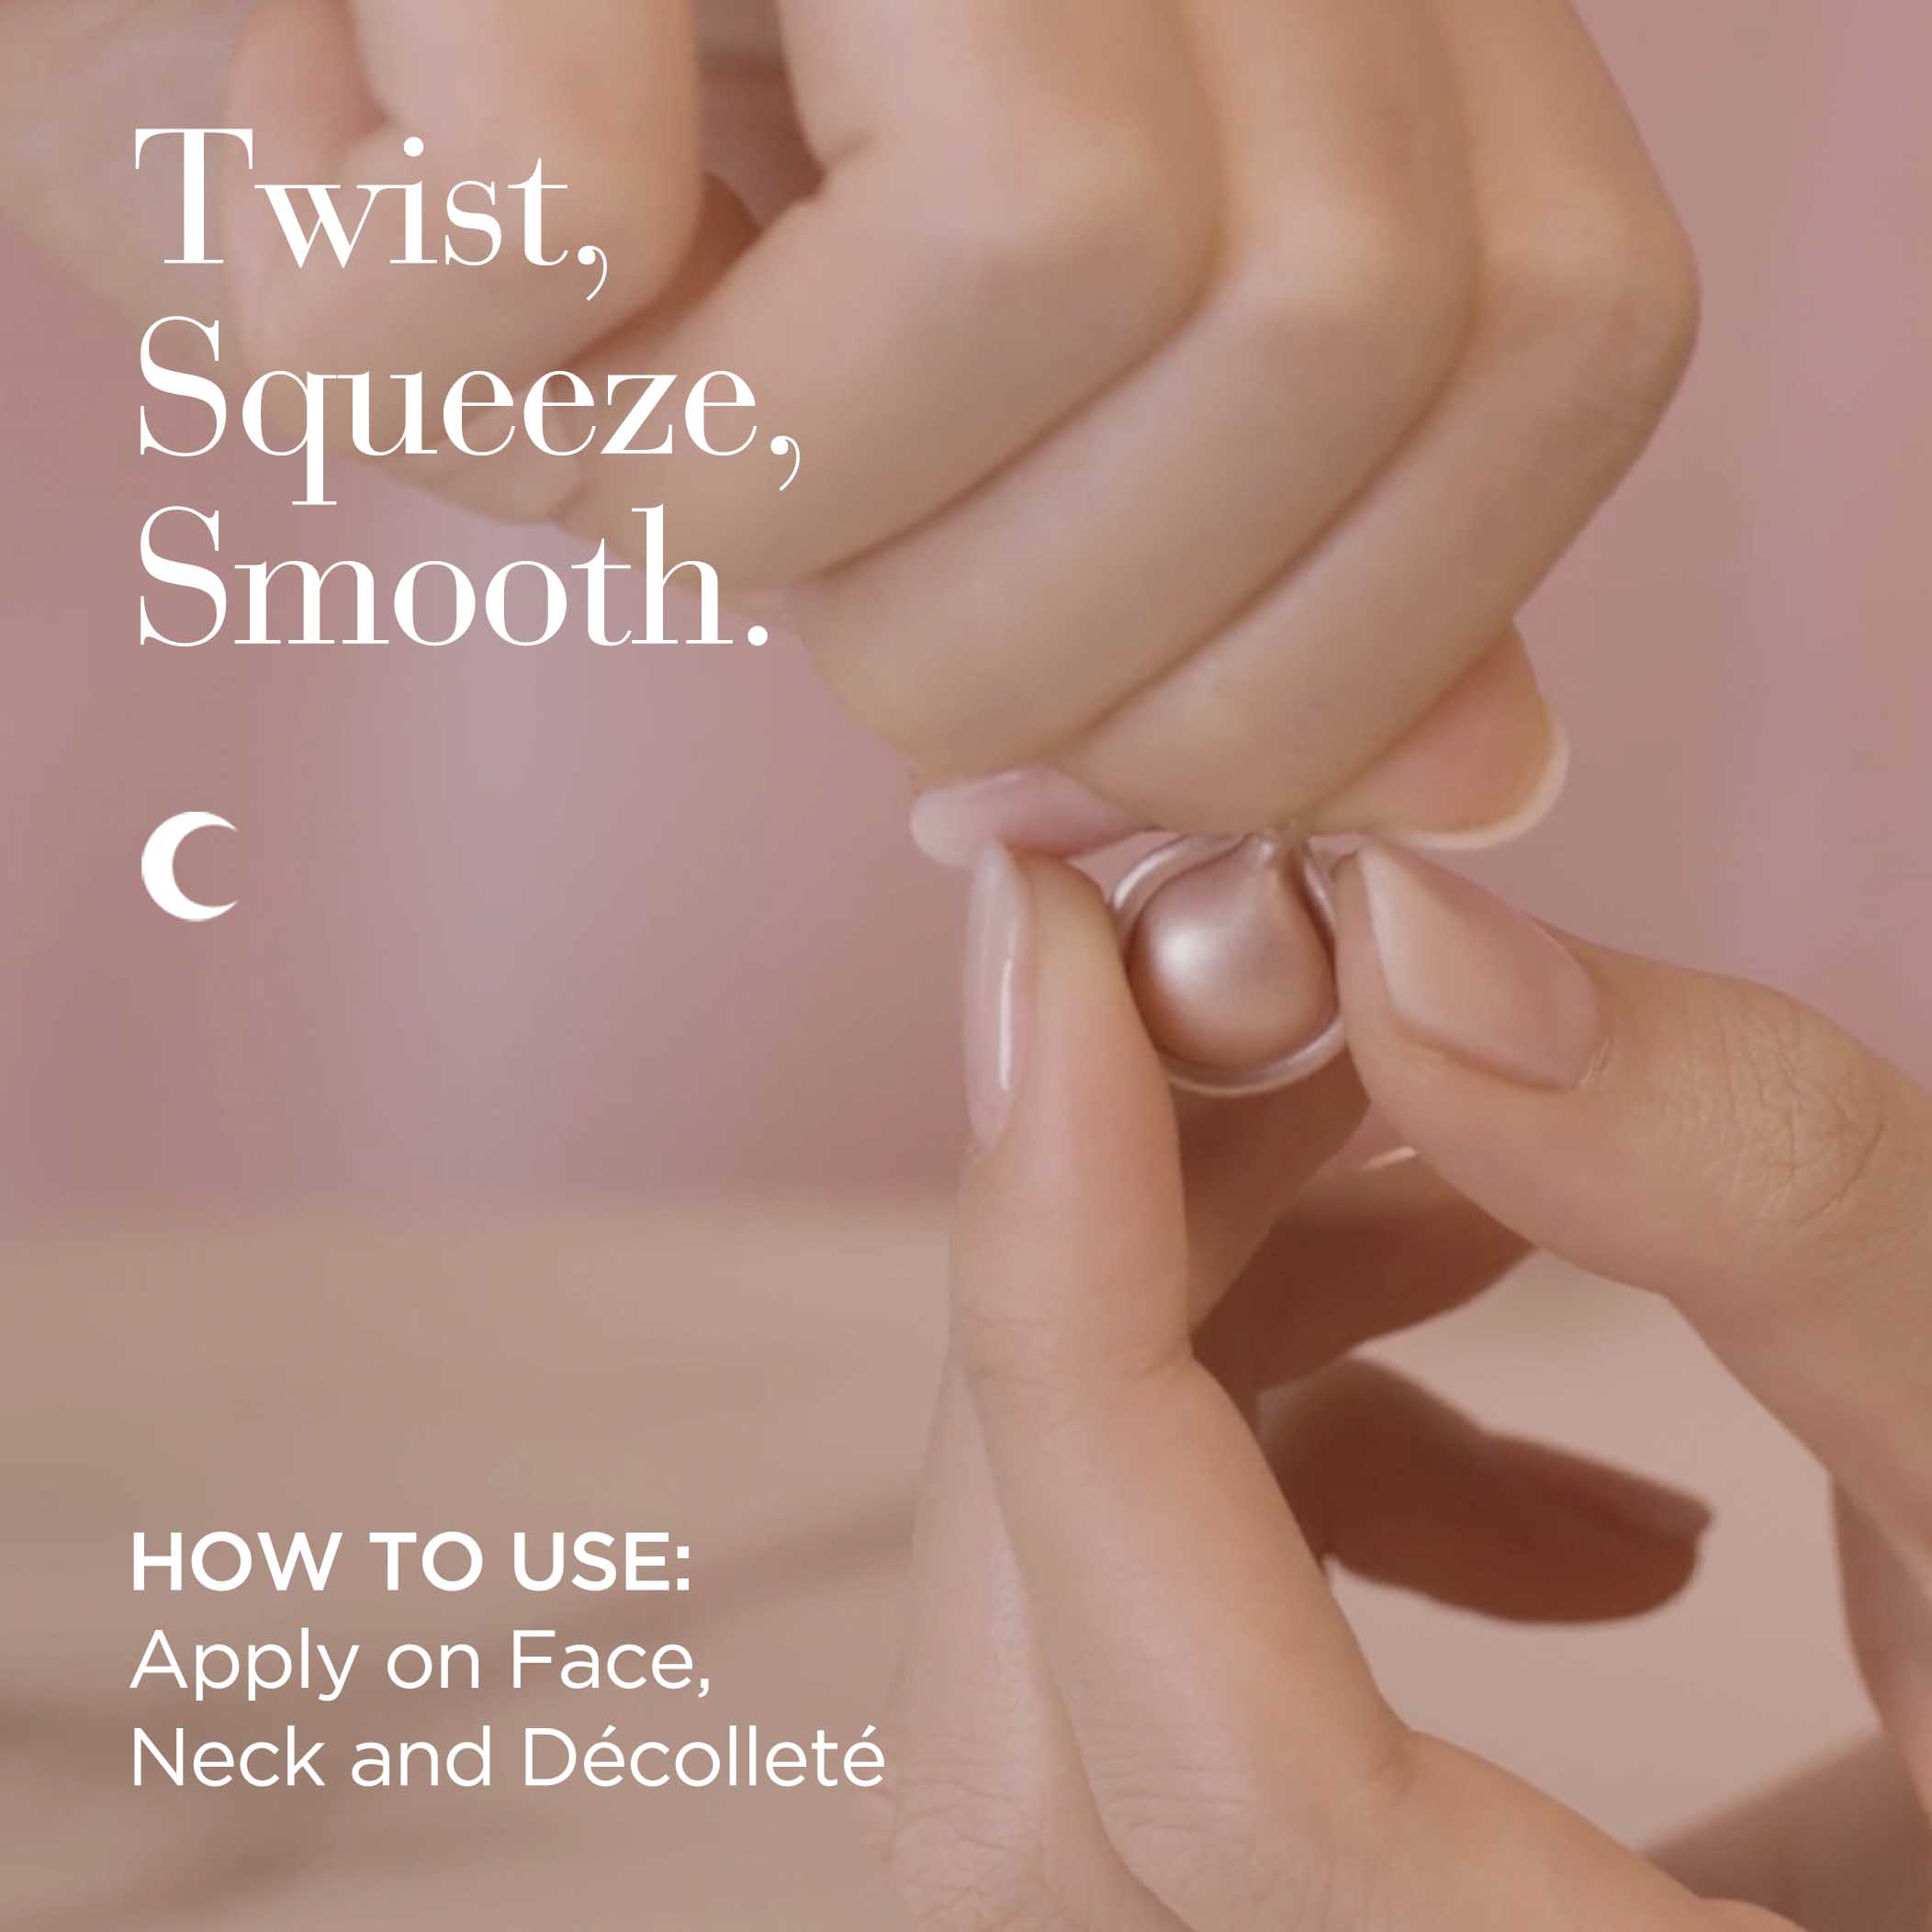 Twist, Squeeze, Smooth at night. Apply on face, neck and decollete.